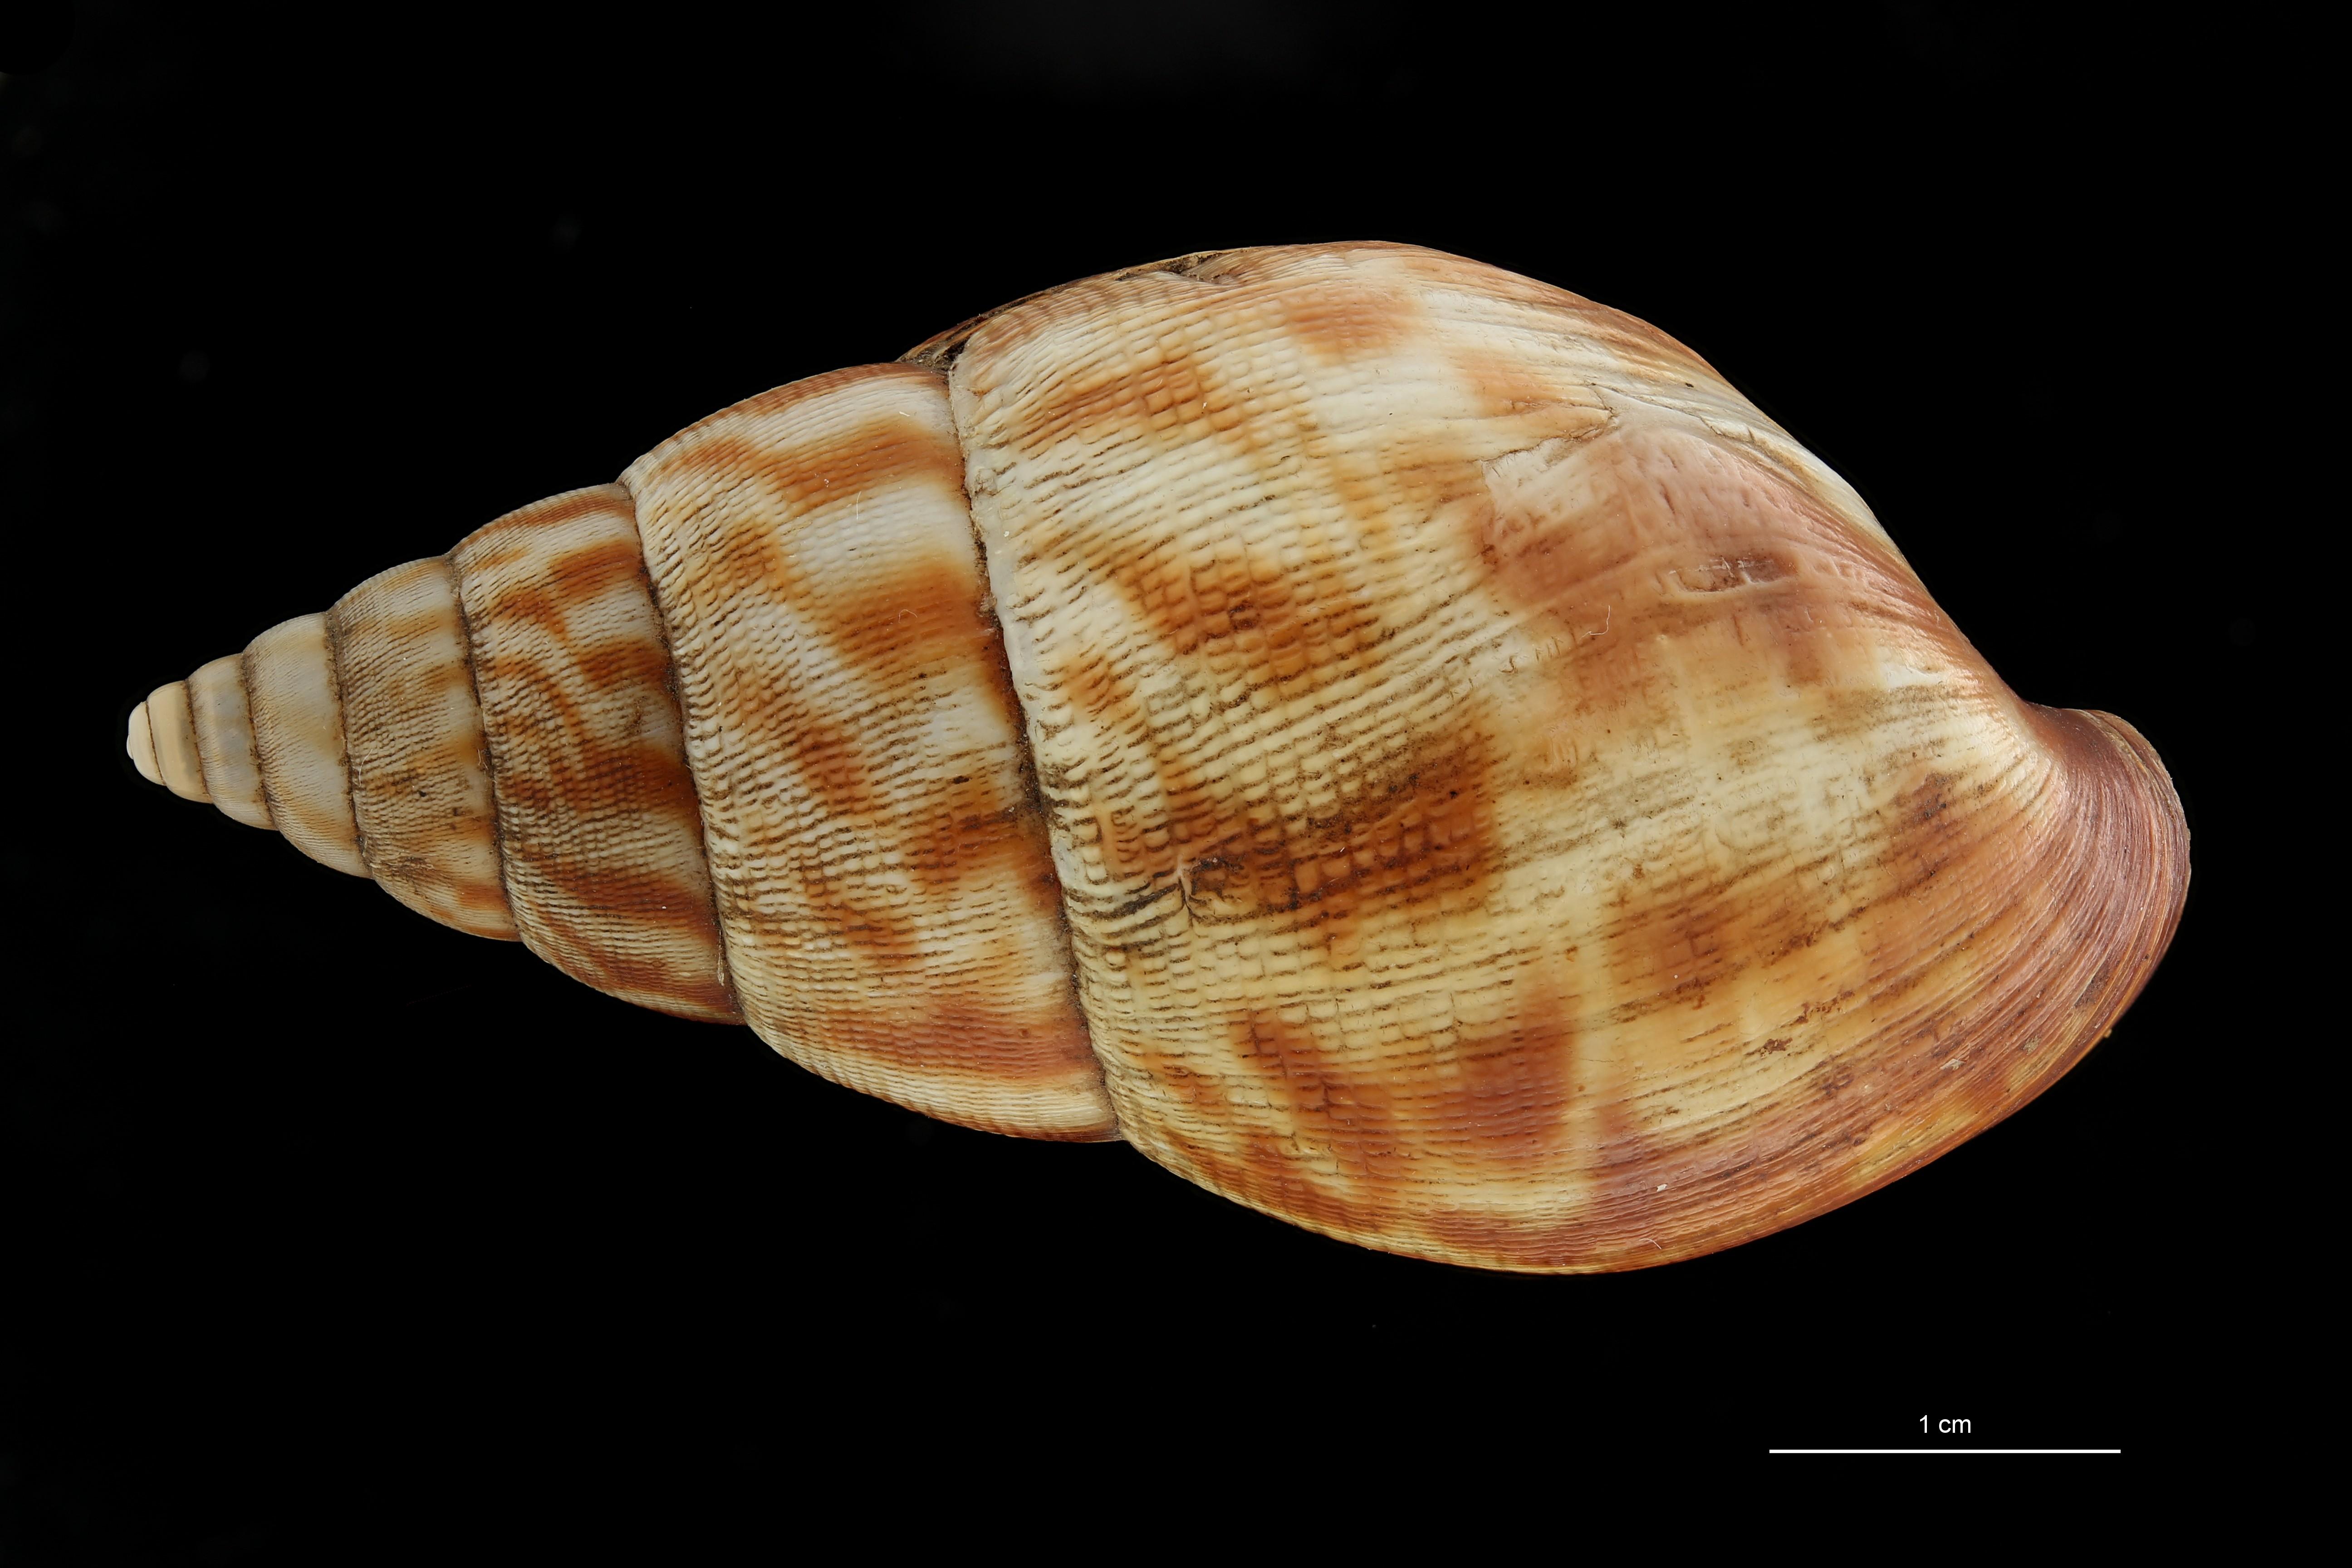 BE-RBINS-INV MT 164 Achatina morrelli Cotype D ZS DMap Scaled.jpg